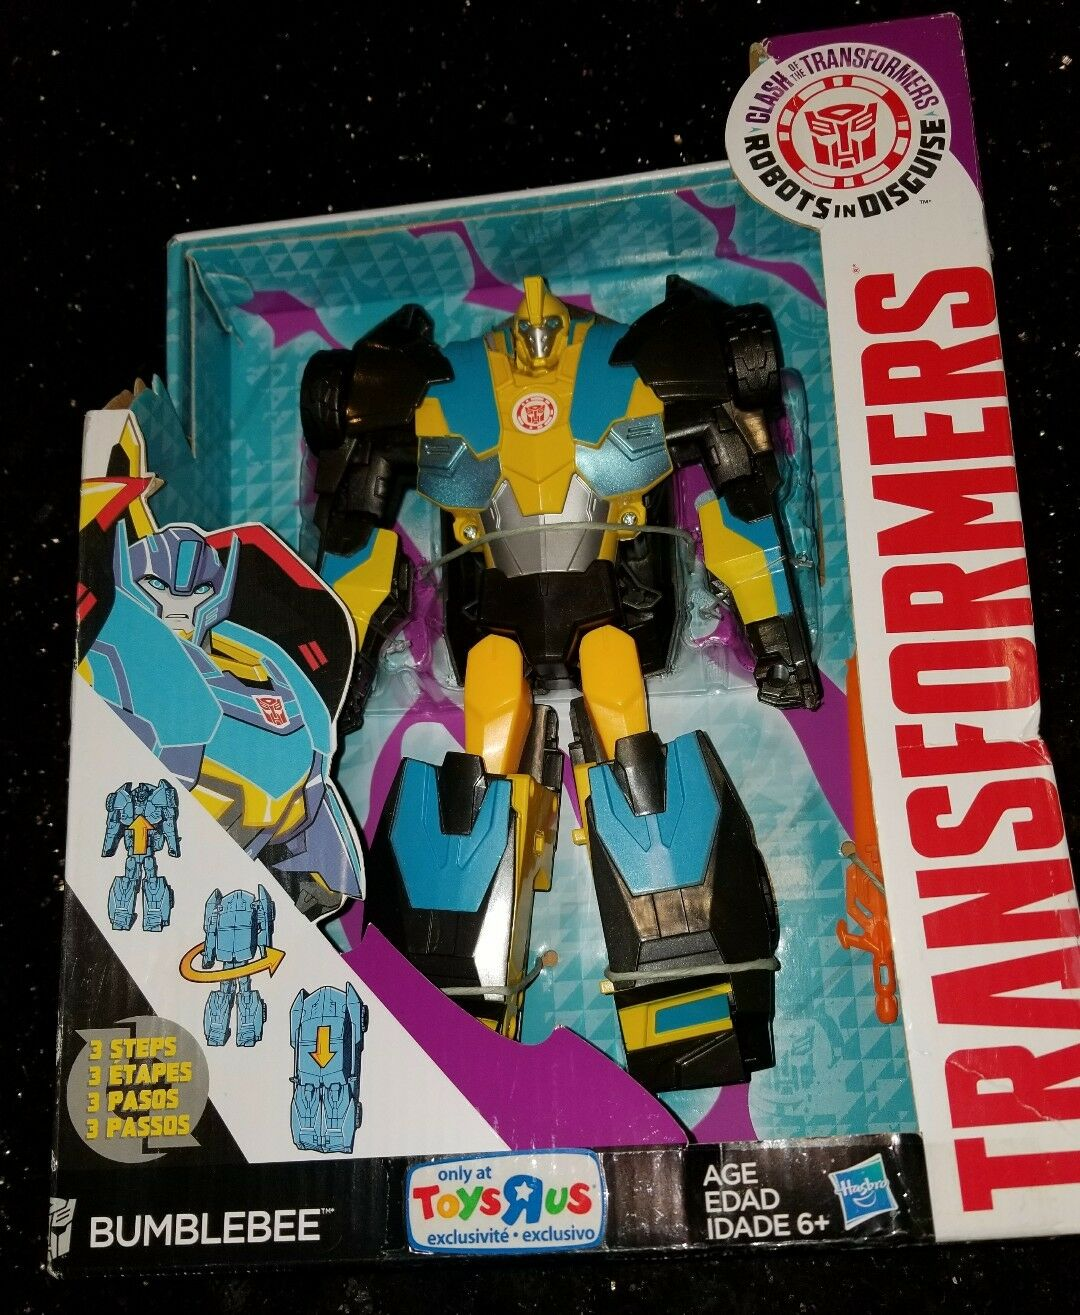 New in box Transformers Clash of the Transformers Transformers Transformers bubblebee 91fcae